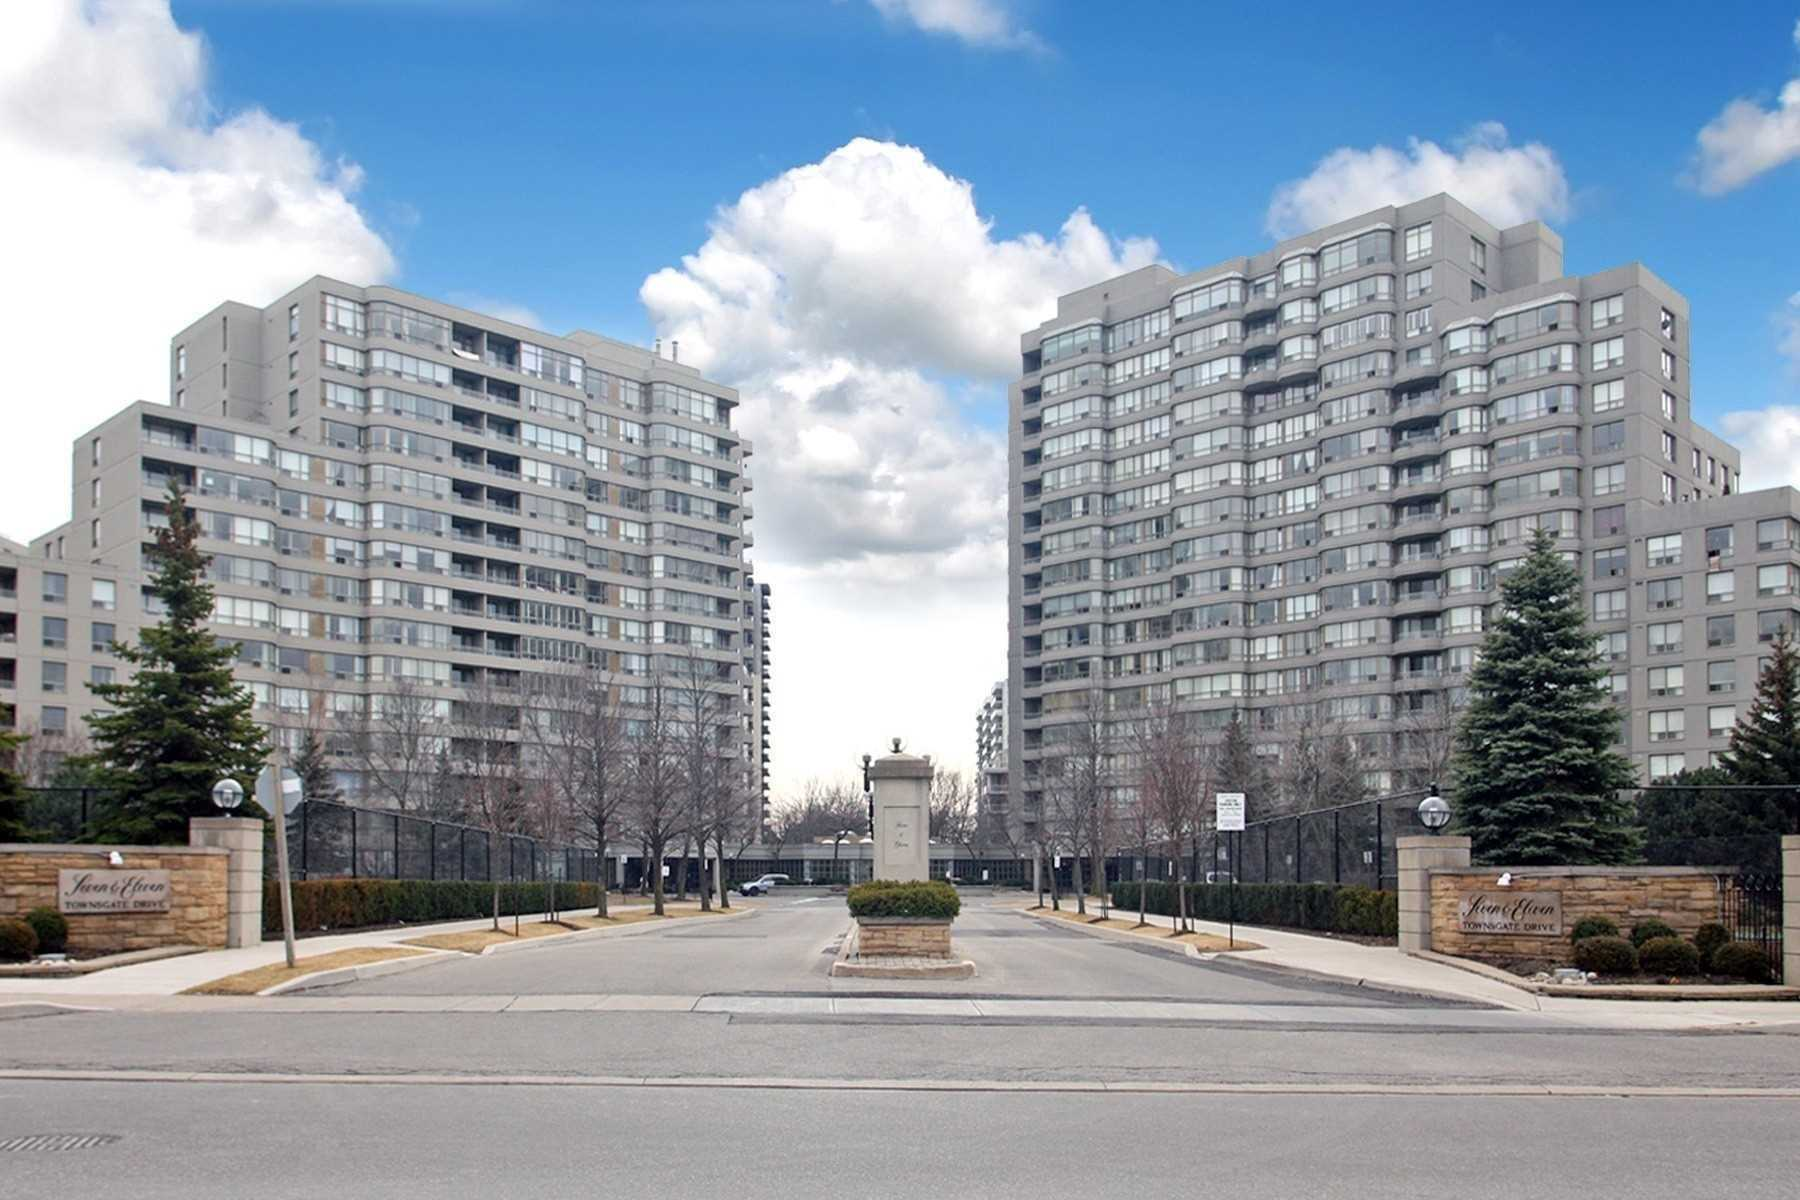 A.A.A Location Of Crestwood-Springfarm-Yorkhill. Immaculate & Move-In Condition. Bright & Sun-Filled N/E Facing Luxury 2 Bedroom + Solarium & 2Bathrm, Almost 1400 Sqft Of Living Space On Ground Floor. Open Concept, Huge Living/Dining Room, Large Solarium/ Family Room Area Combined W/ Breakfast Area & Eat-In Kitchen Which O/Looks Beautiful Courtyard, Large Master Bedroom + W/I Closet + En-Suite W/ Over-Sized Soaker Tub + Separate Shower.